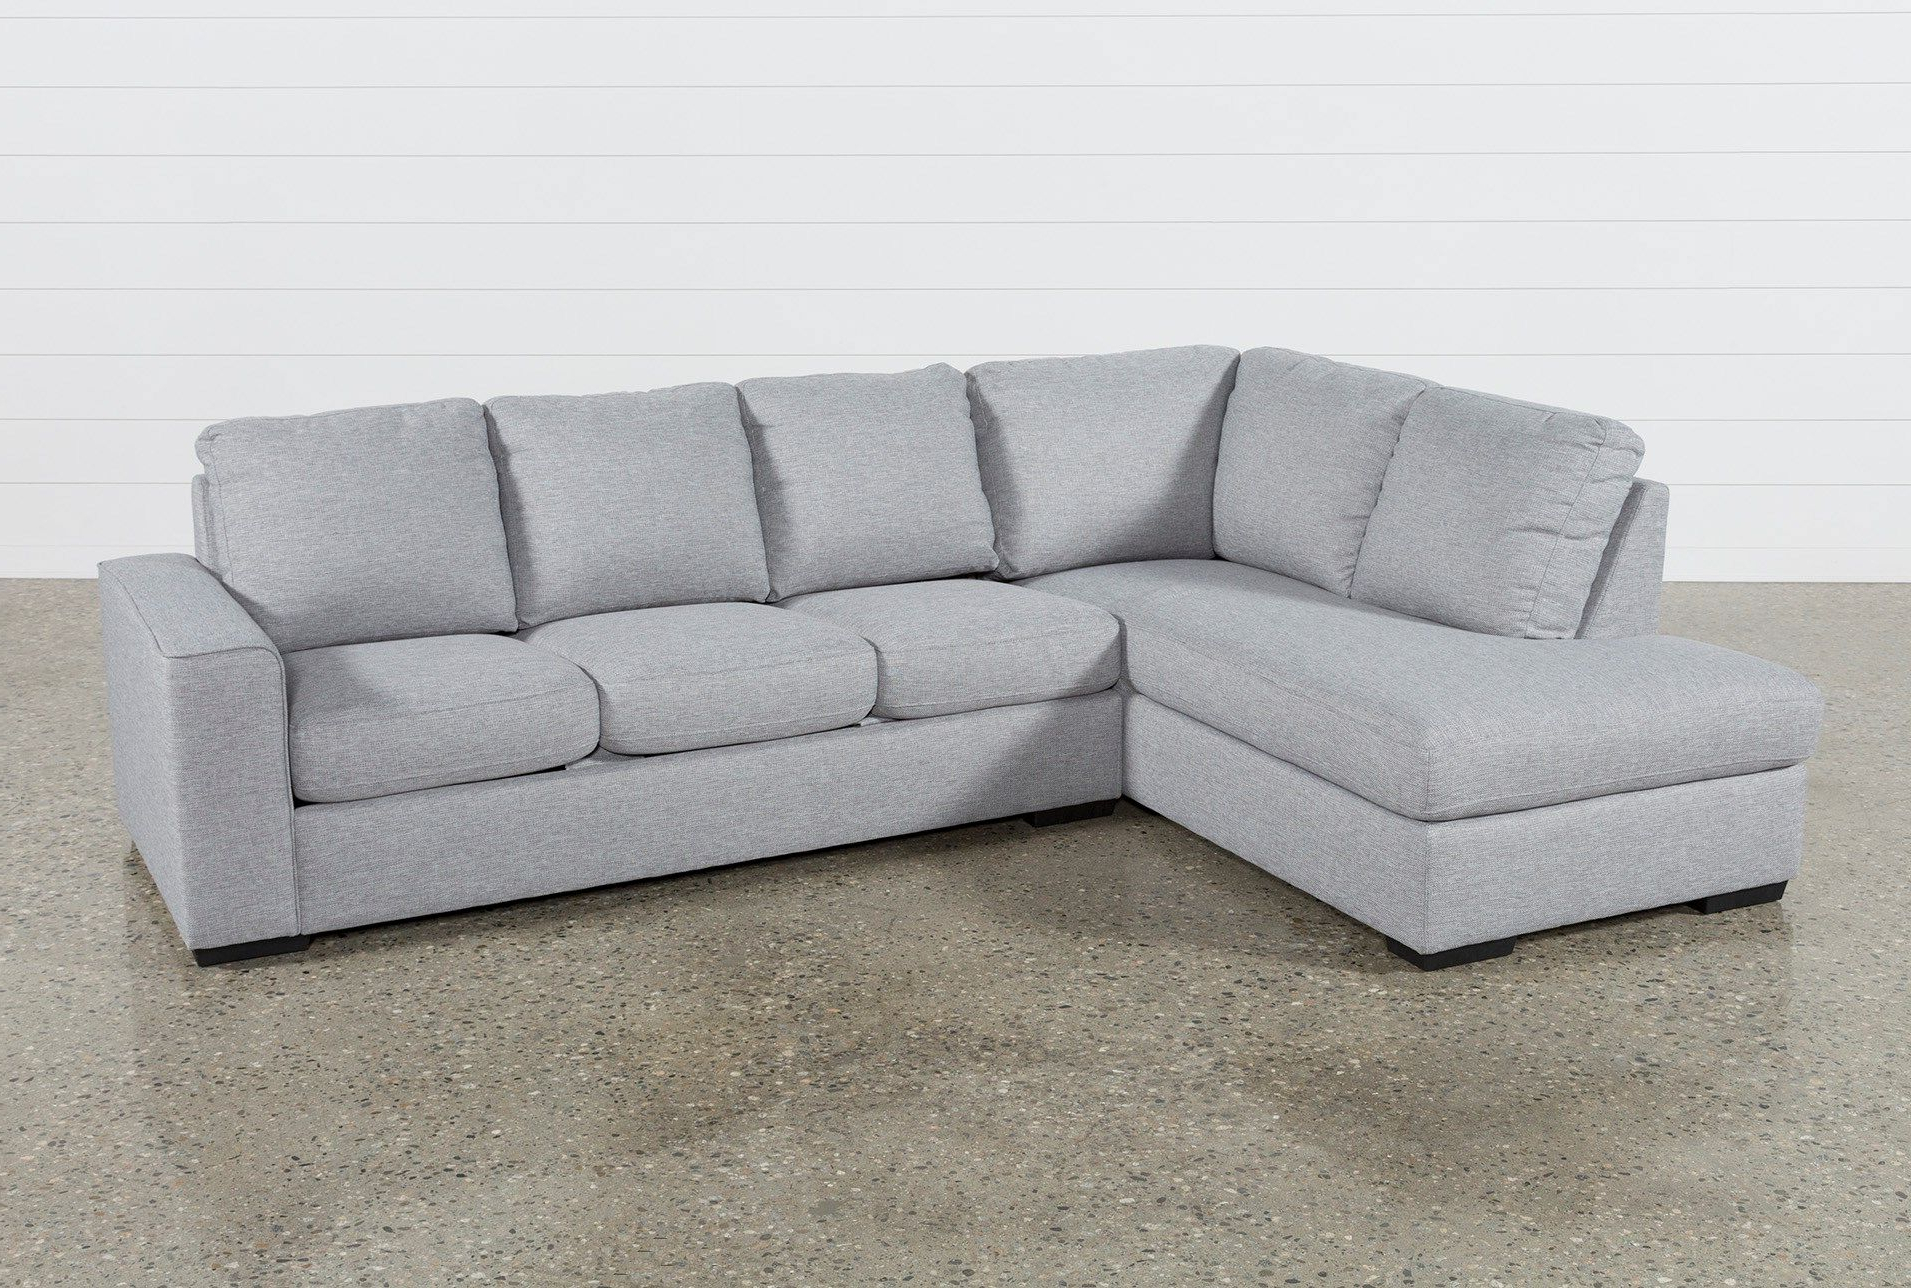 2019 Aquarius Dark Grey 2 Piece Sectionals With Raf Chaise Regarding Lucy Grey 2 Piece Sectional W/laf Chaise In (View 2 of 20)